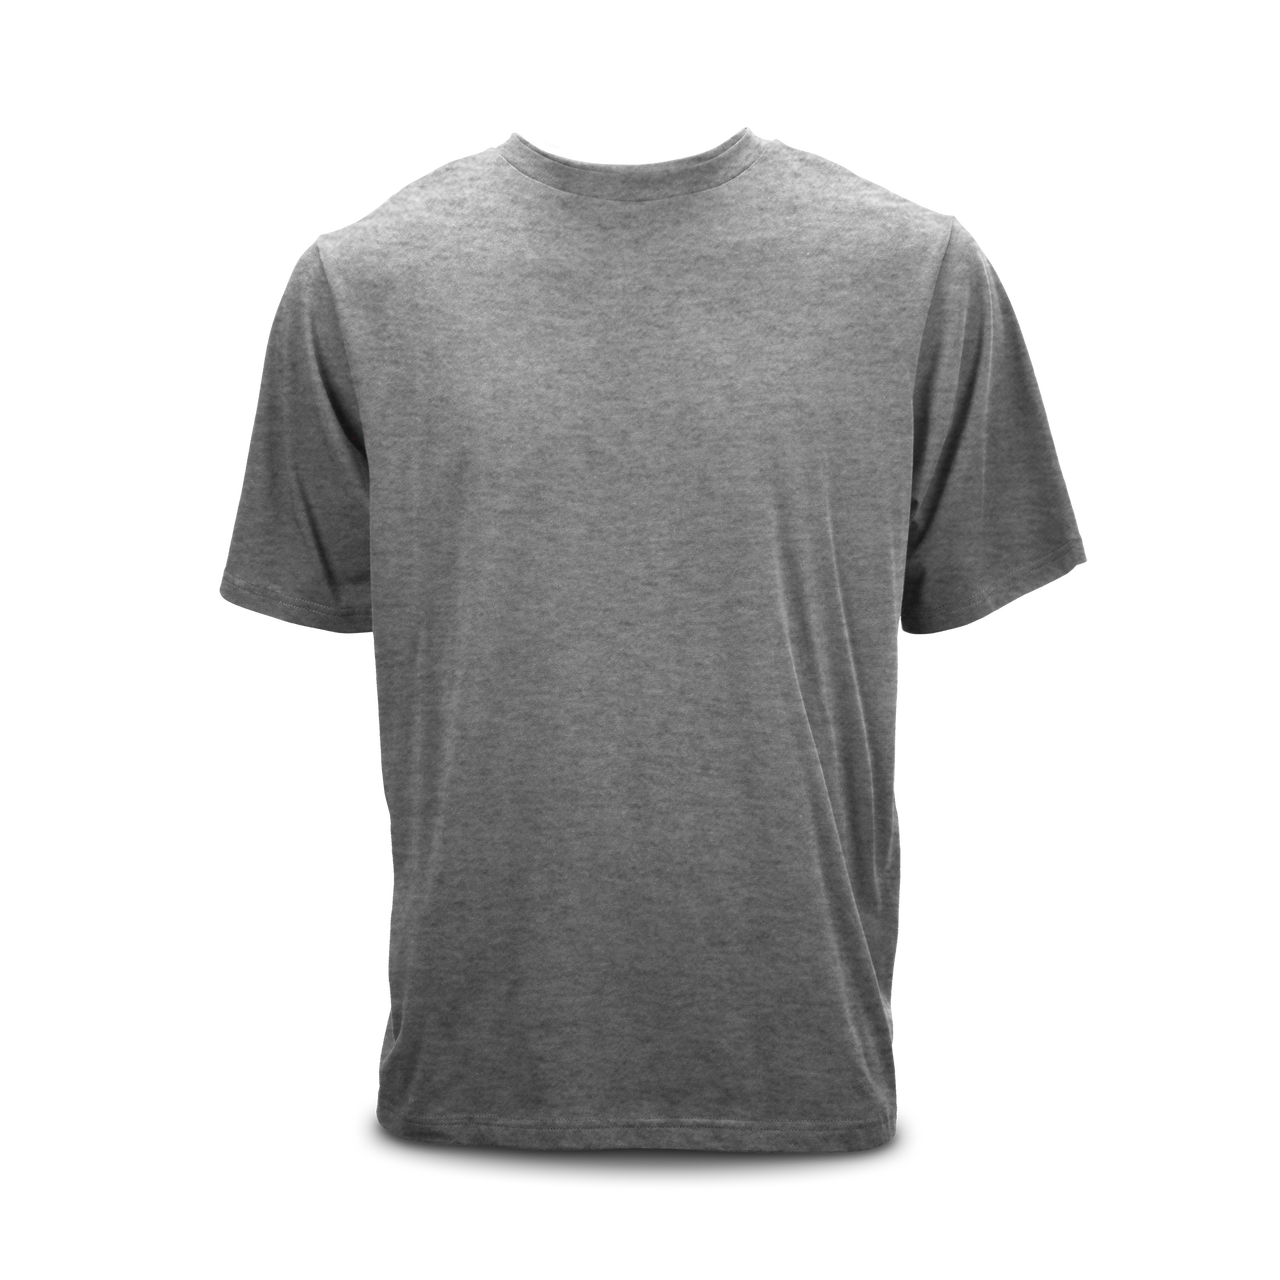 400901f1cc119 Soft Touch Tee